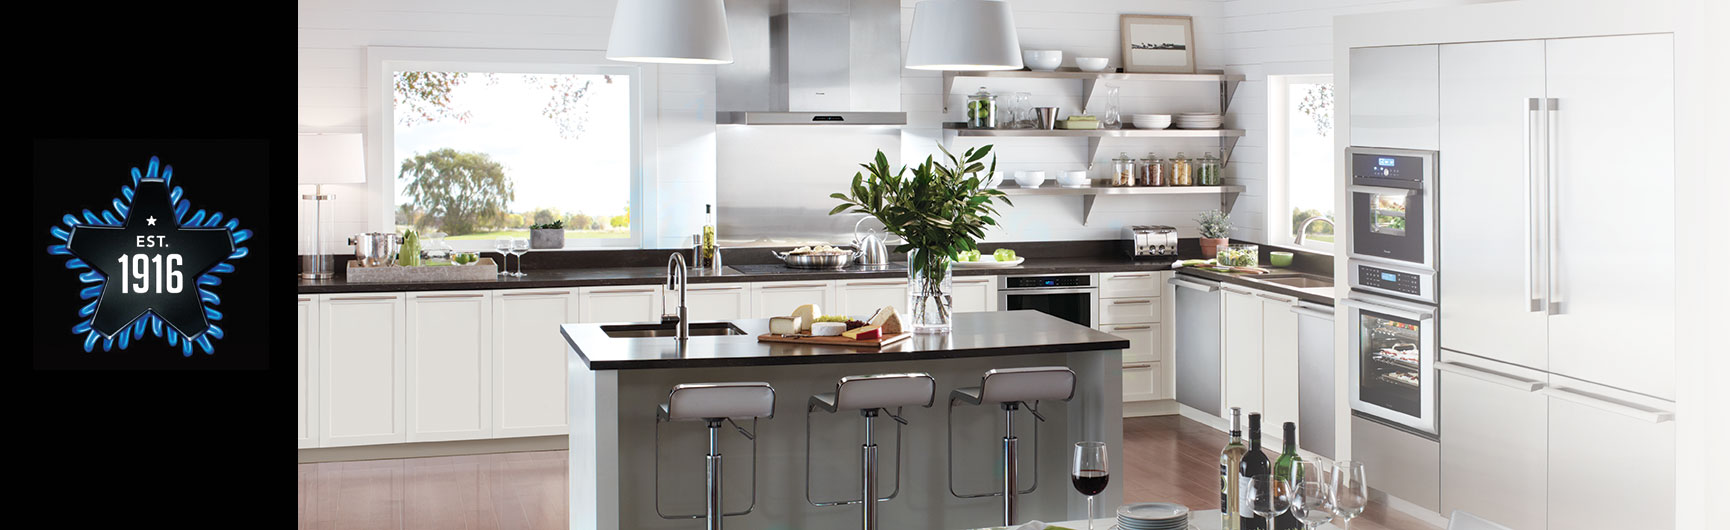 Thermador Kitchen